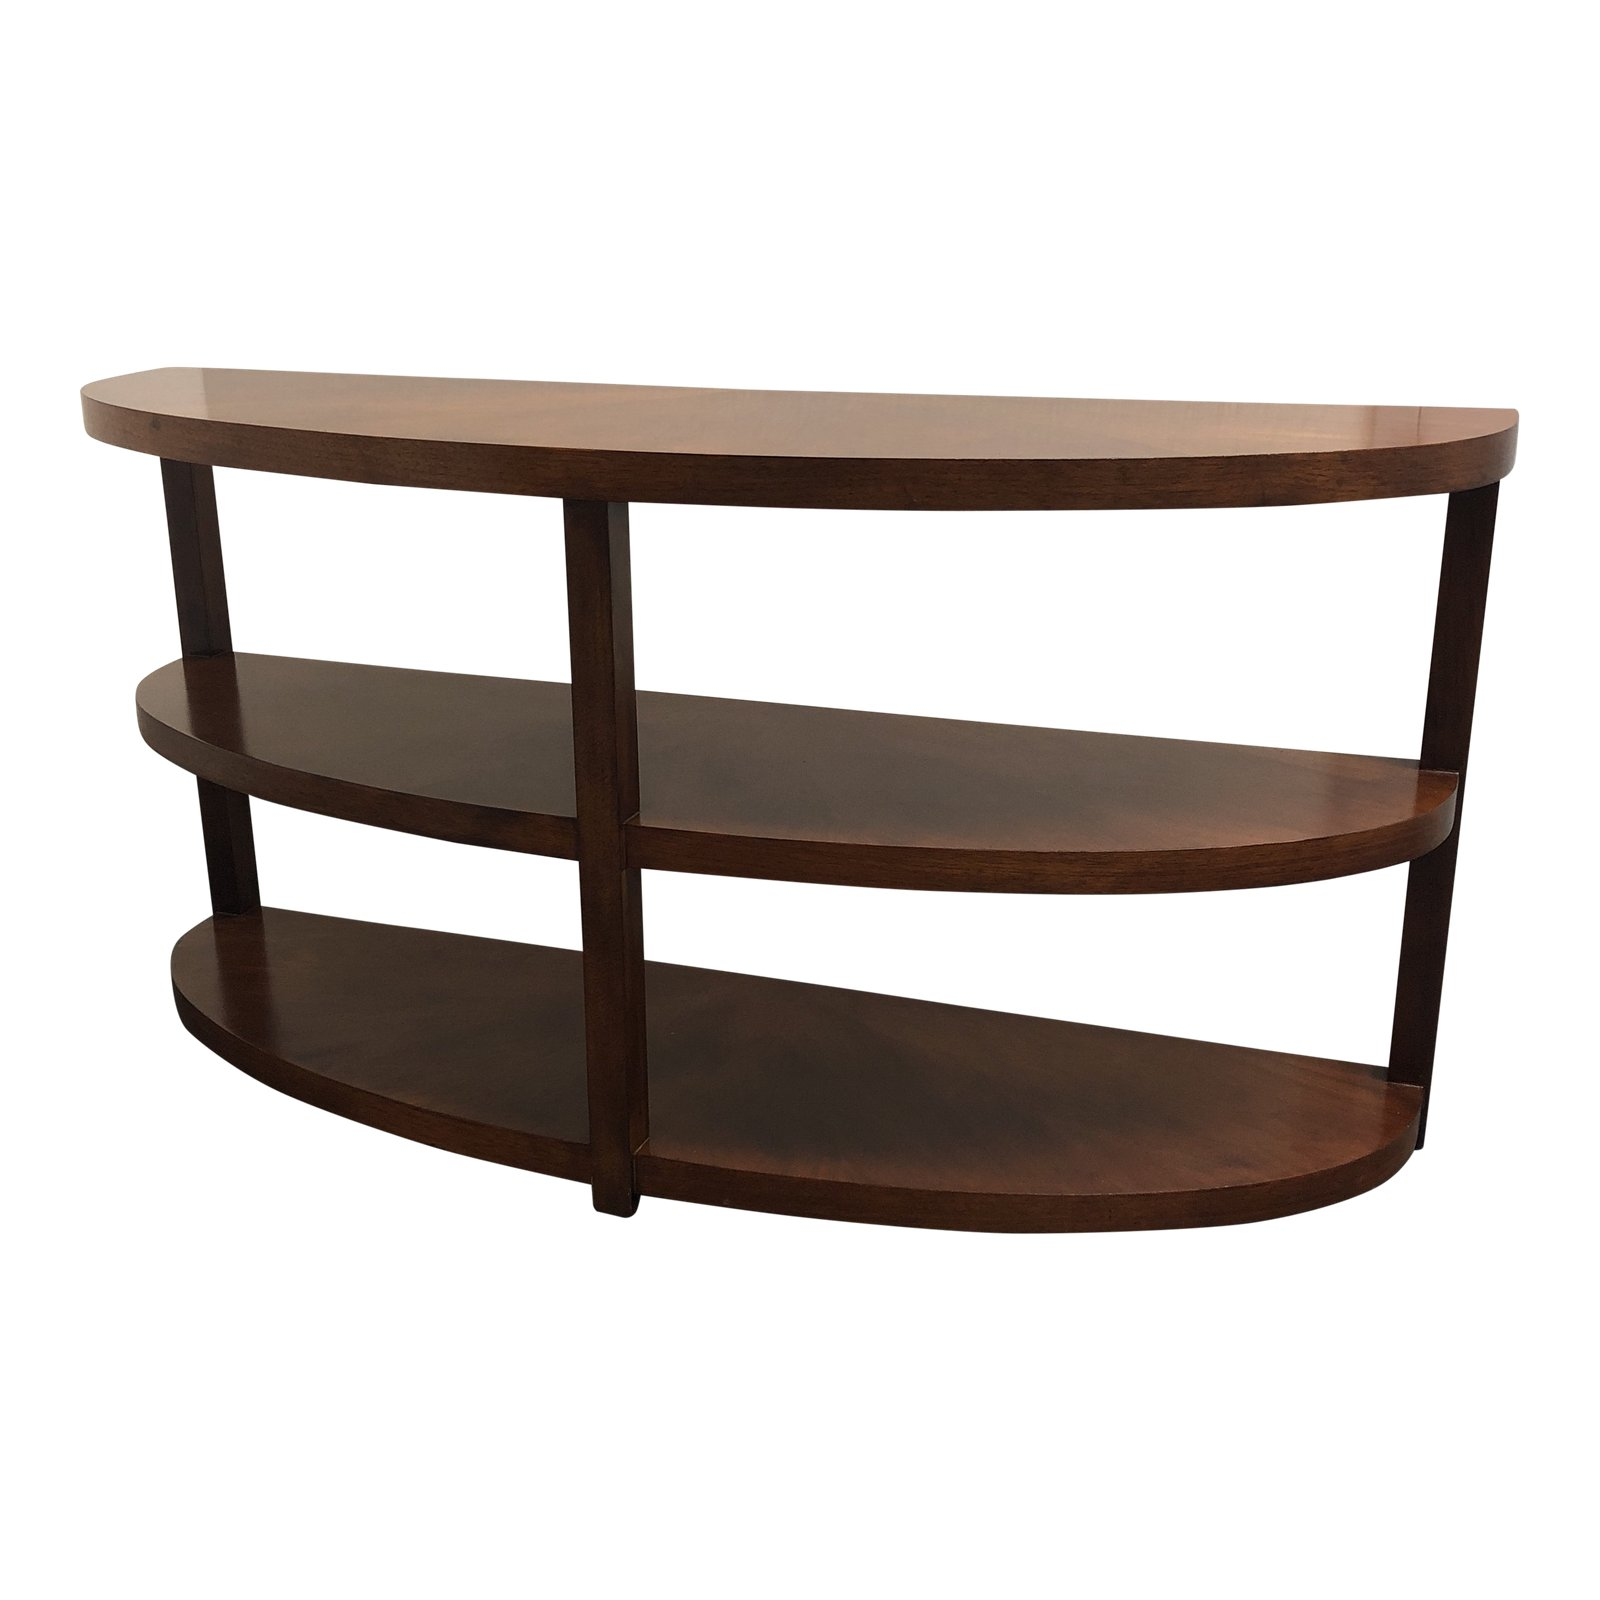 Mid Century Modern Curved Three Tiered Wooden Console Table